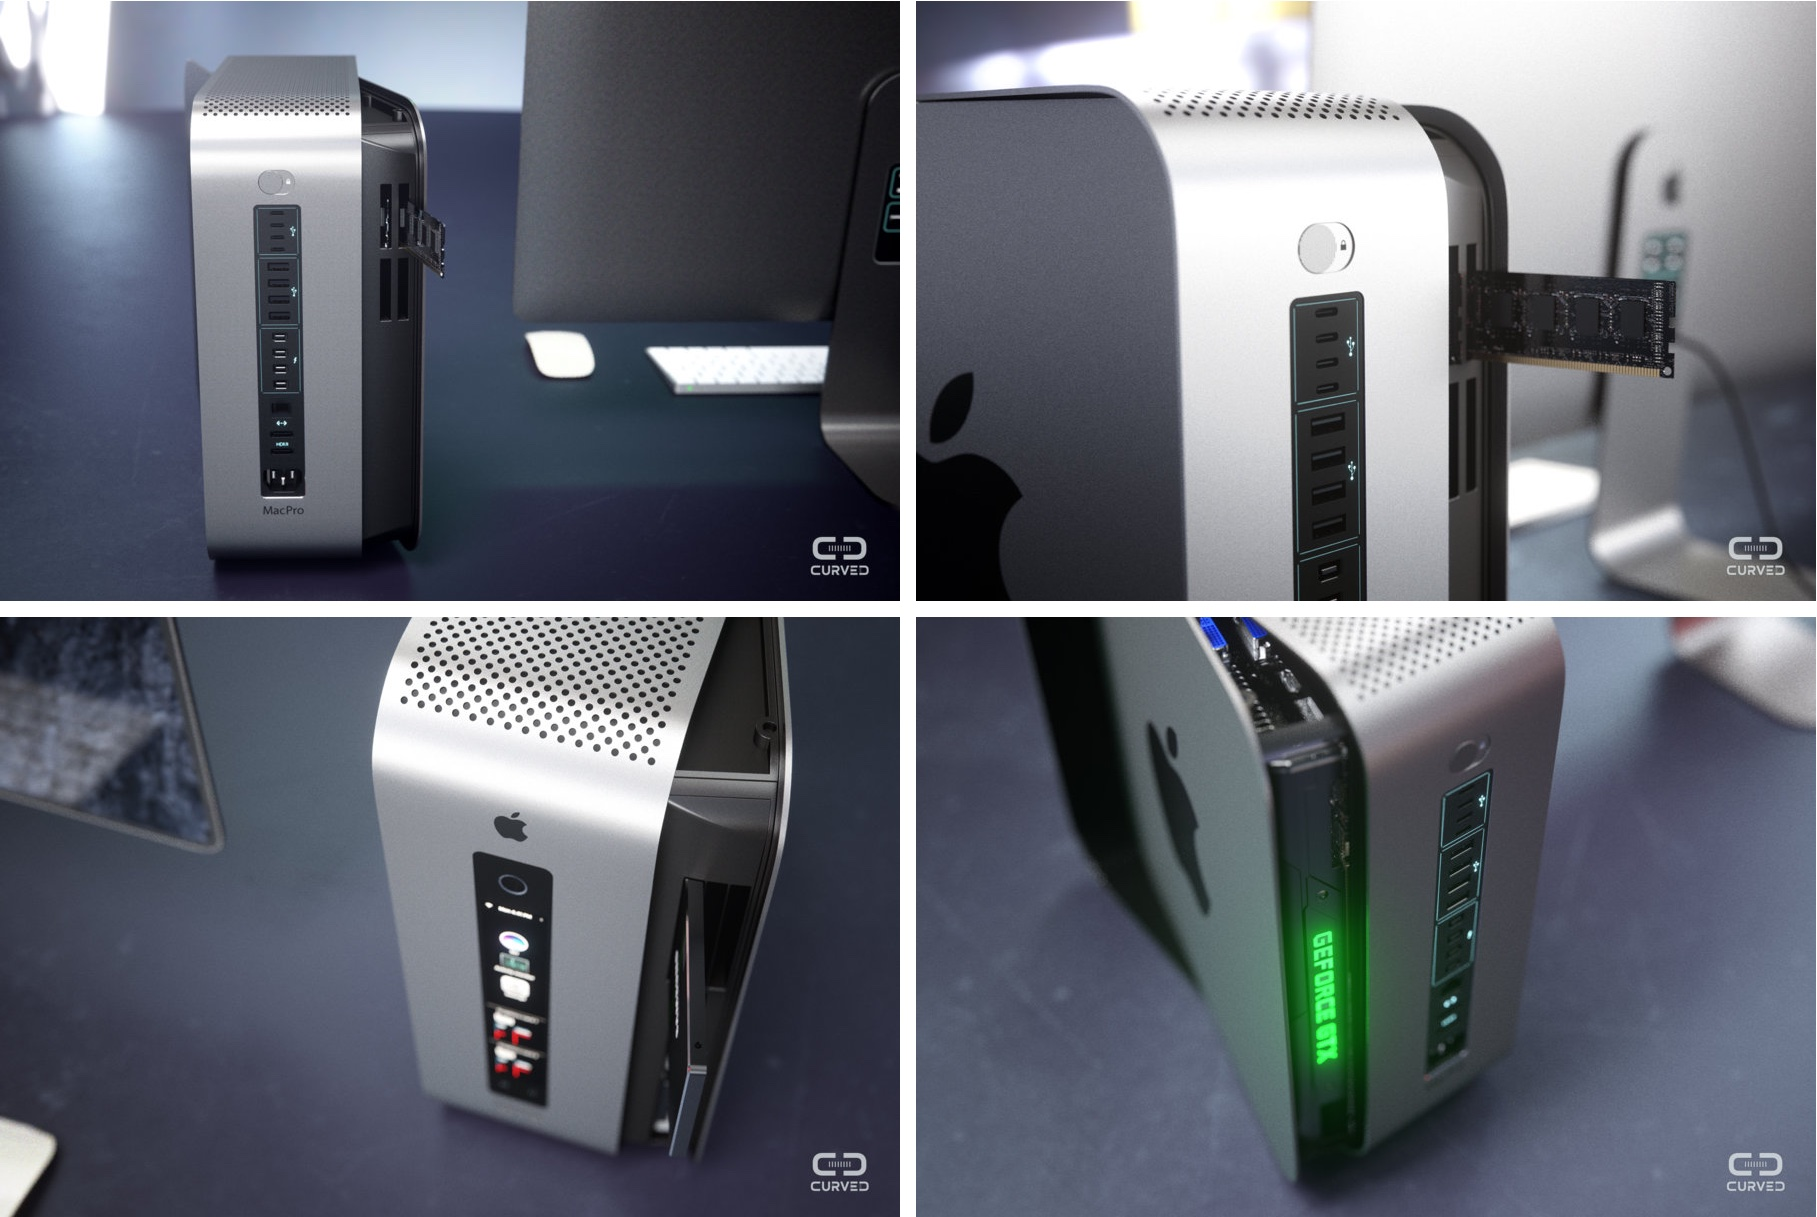 Apple officially confirms that its next-generation modular Mac Pro